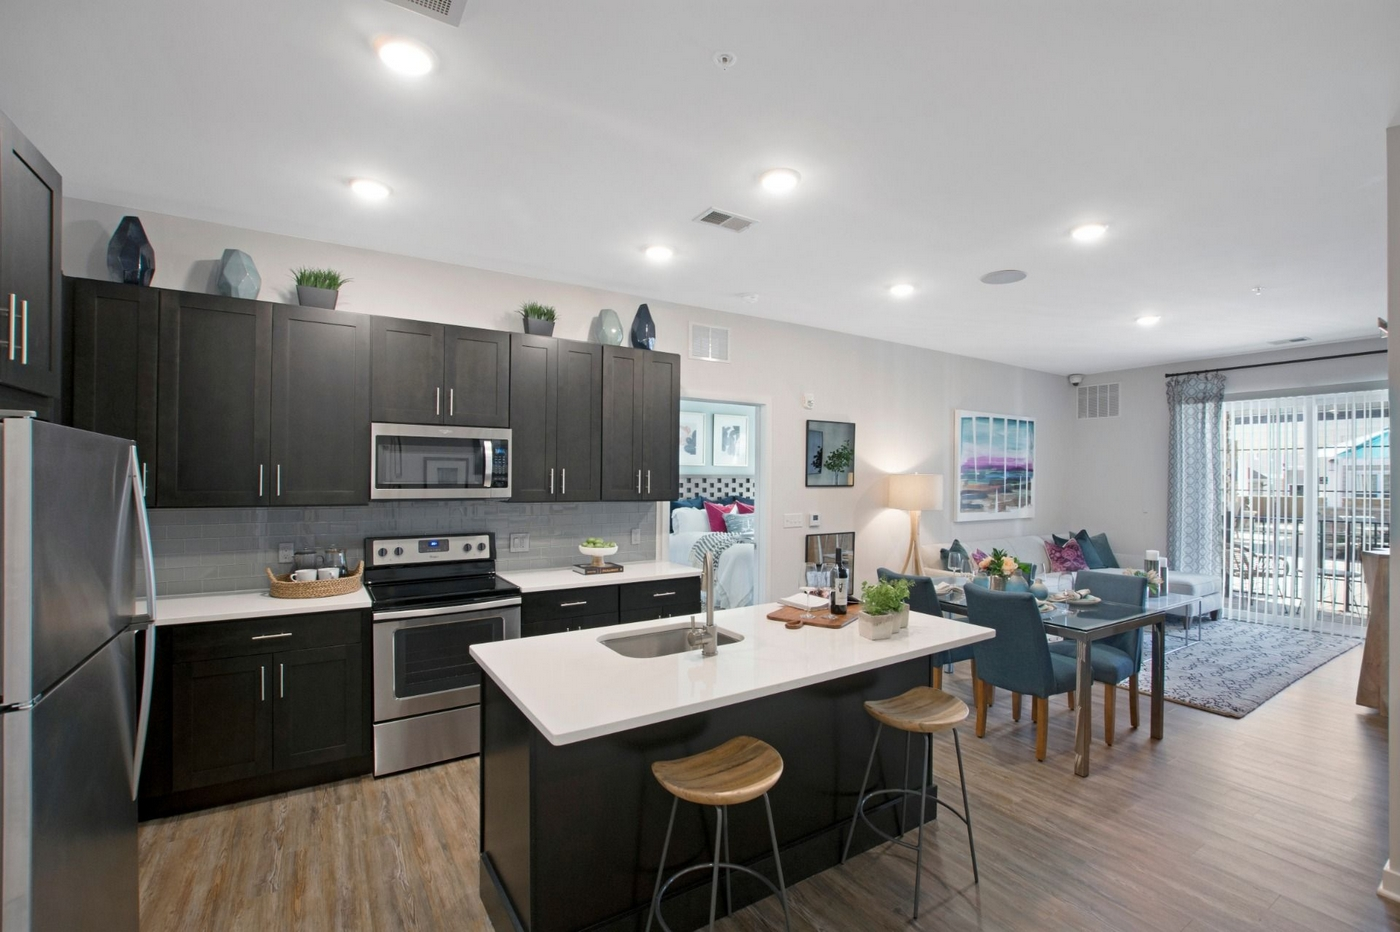 Interior image of kitchen, island, wood floors, dark wood cabinets and living room space